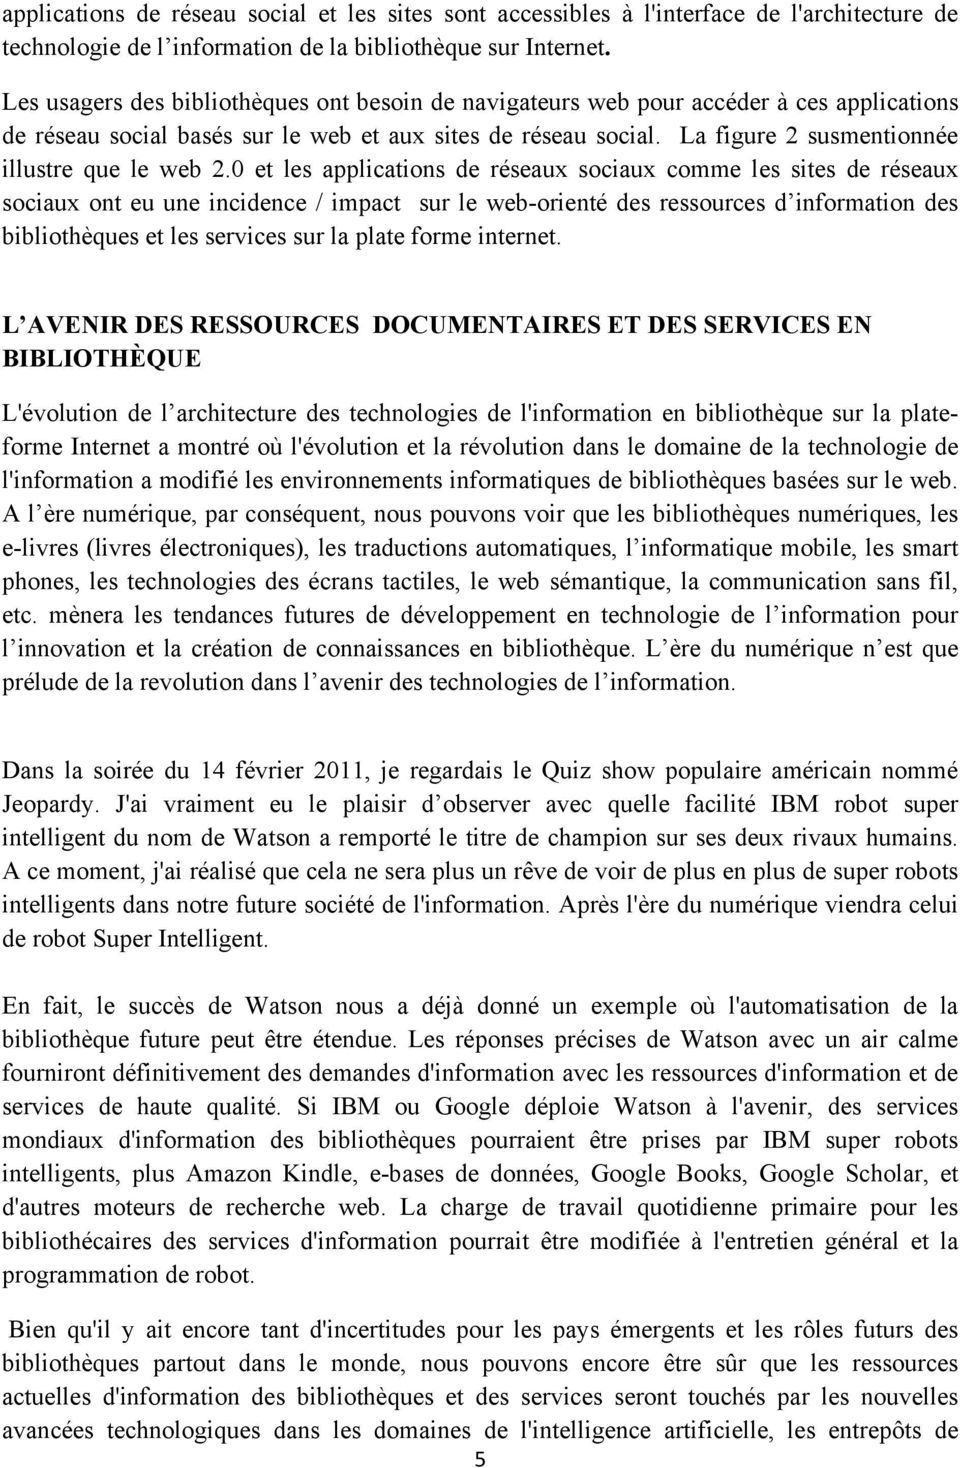 La figure 2 susmentionnée illustre que le web 2.